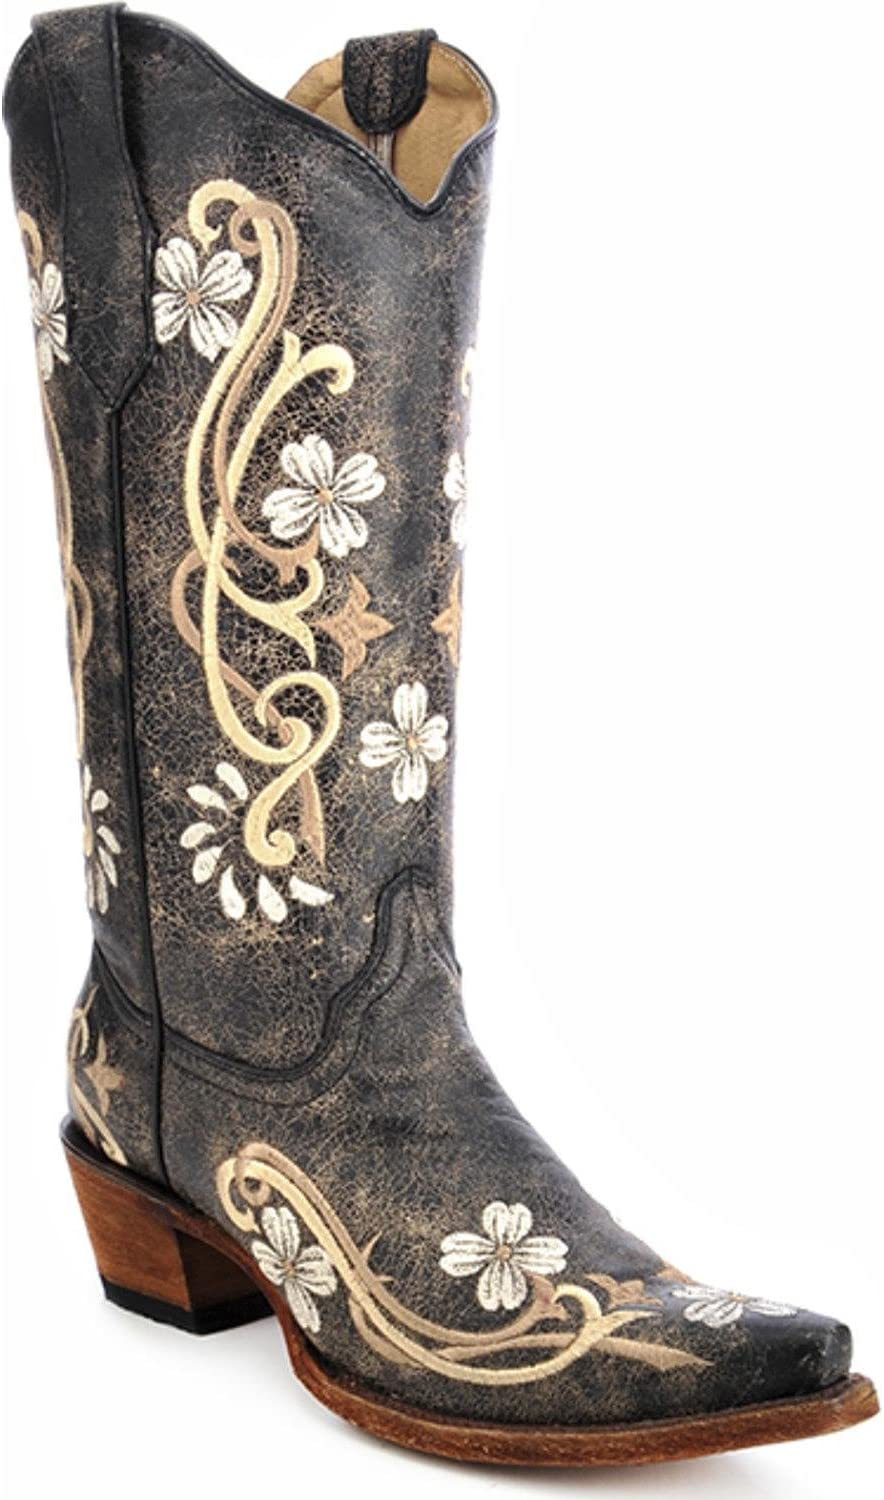 Corral Women's Circle Multi-Colored Embroidered Leather Cowgirl Boots